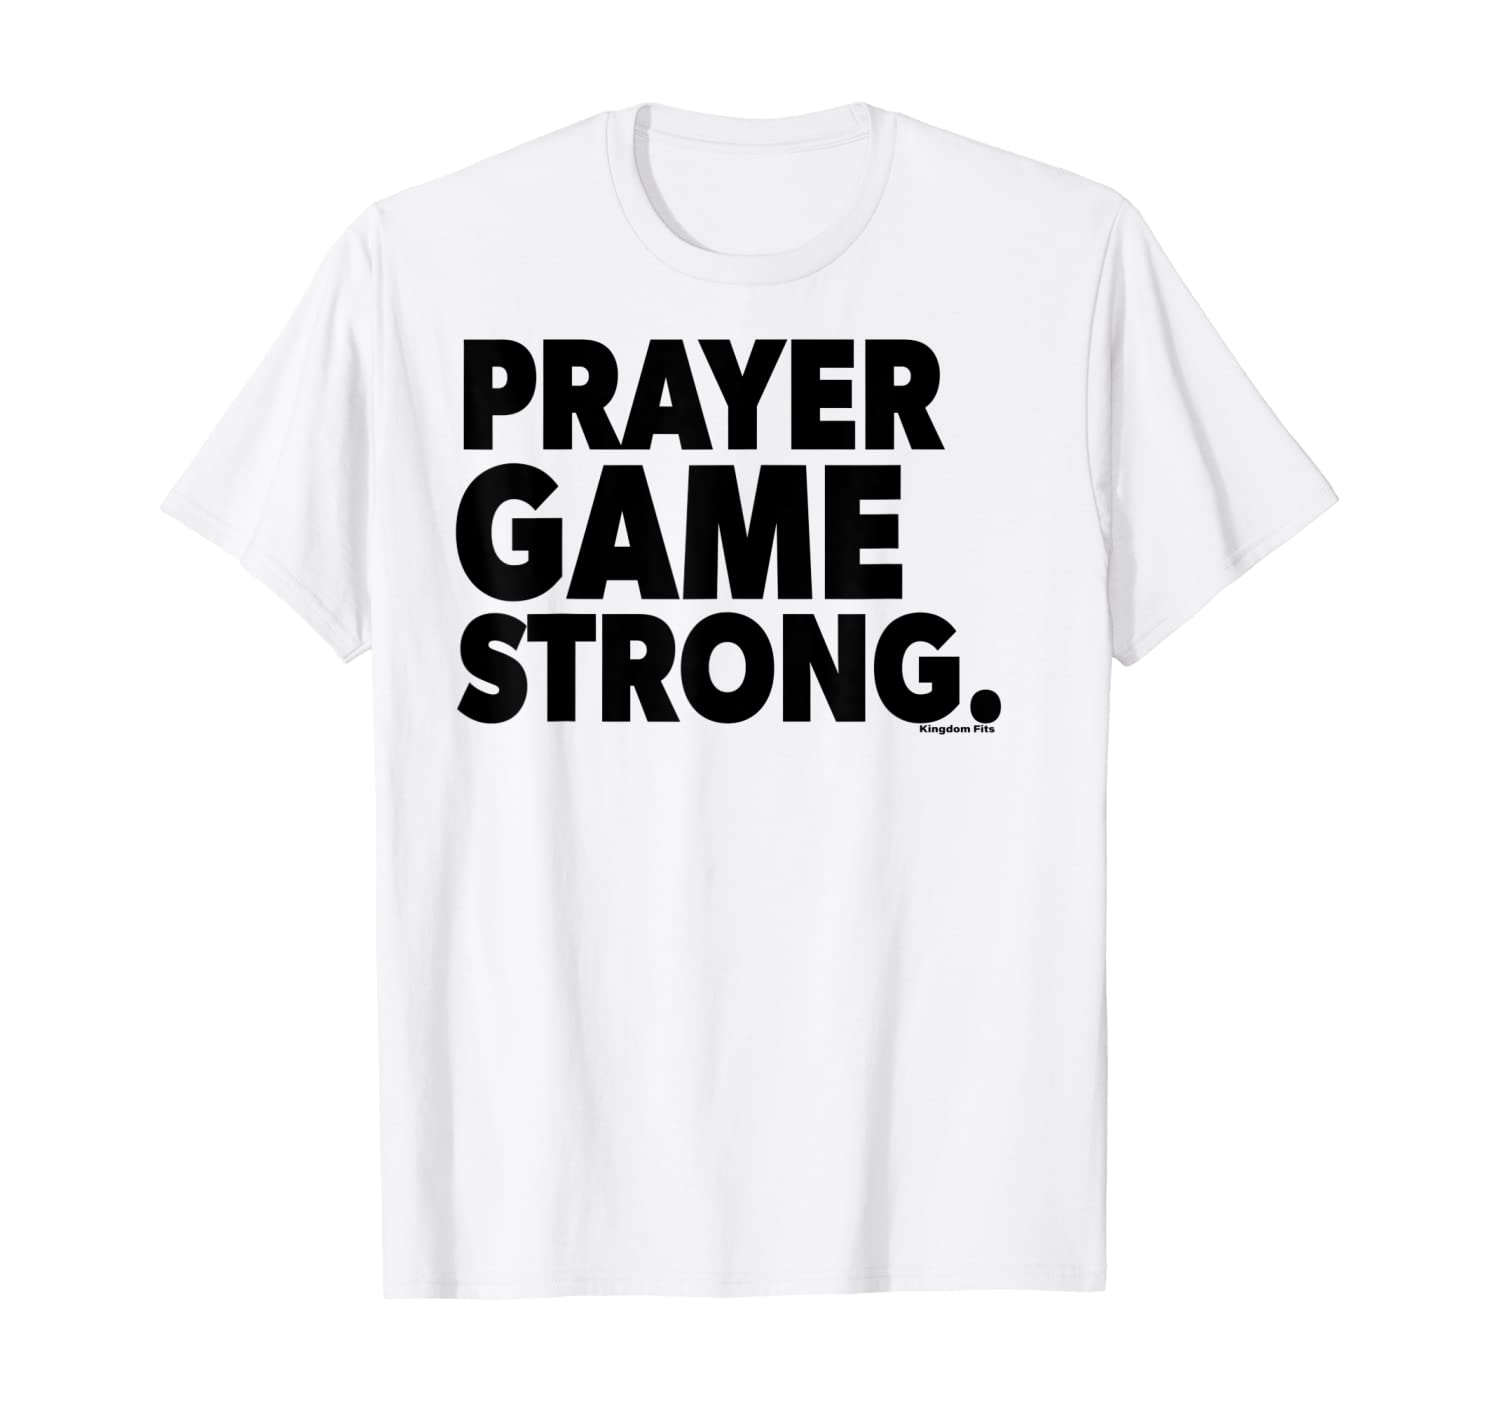 Amazon Com Prayer Game Strong Godly Graphic T Shirt Clothing Will you be good or evil? amazon com